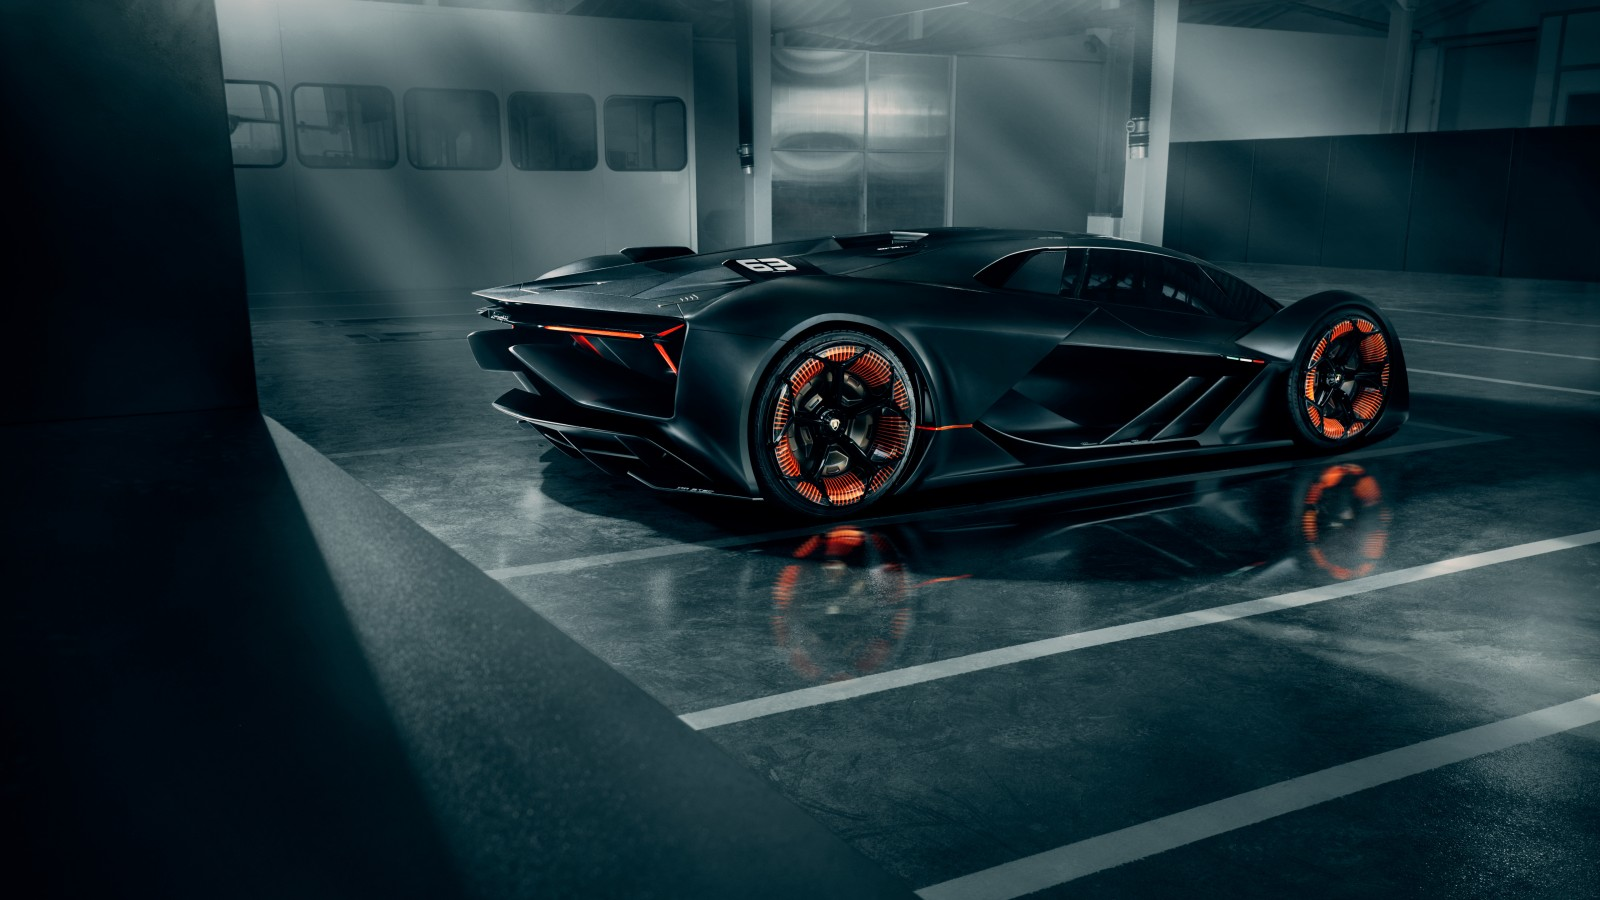 2019 Lamborghini Terzo Millennio 5k 2 Wallpaper Hd Car